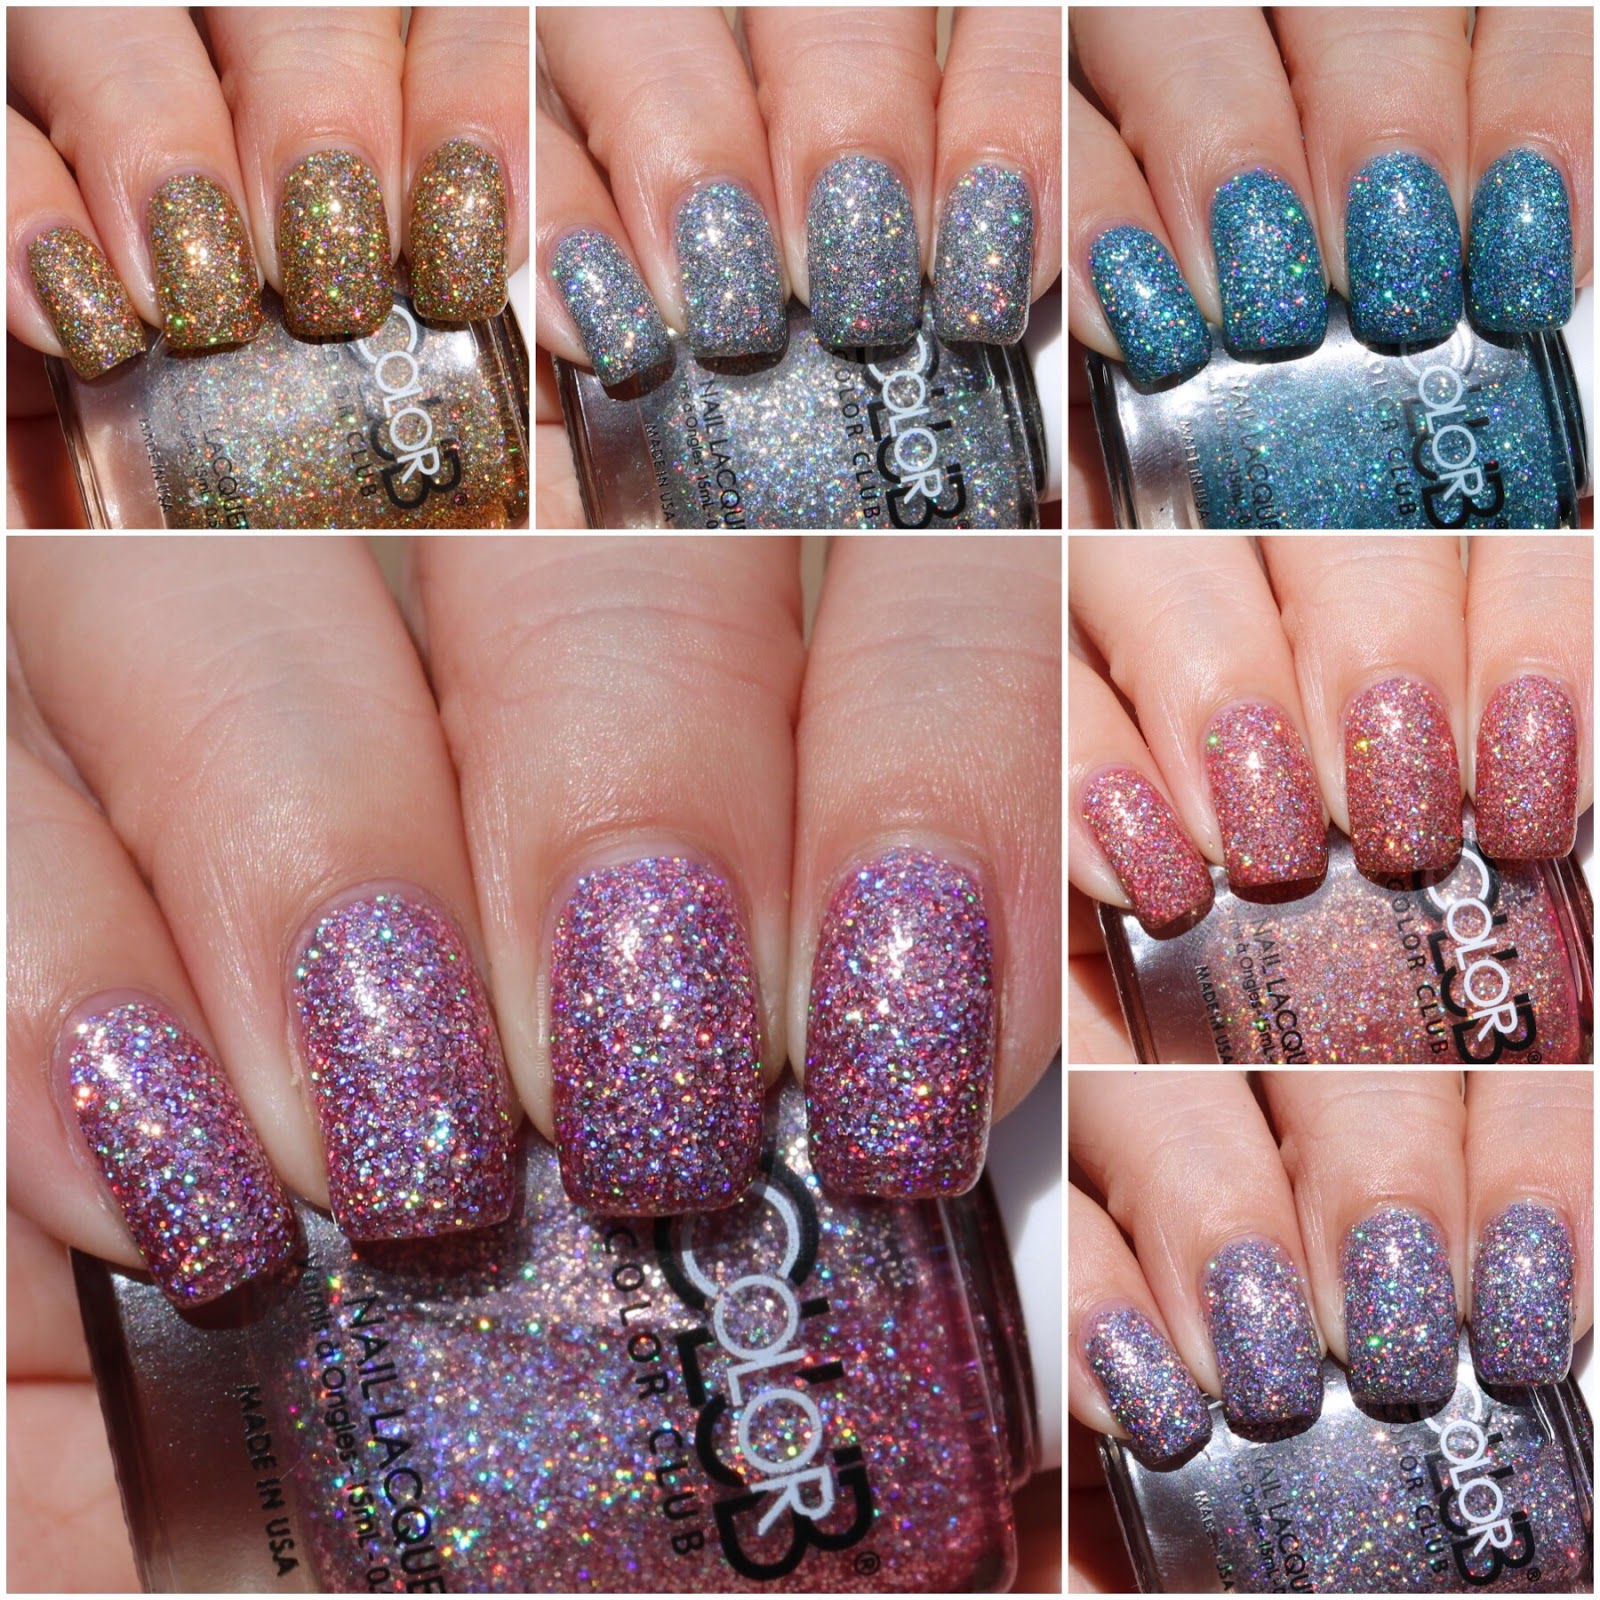 Color Club Holographic Nail Polish Swatches: Olivia Jade Nails: Color Club Hypnotic Hologram Collection